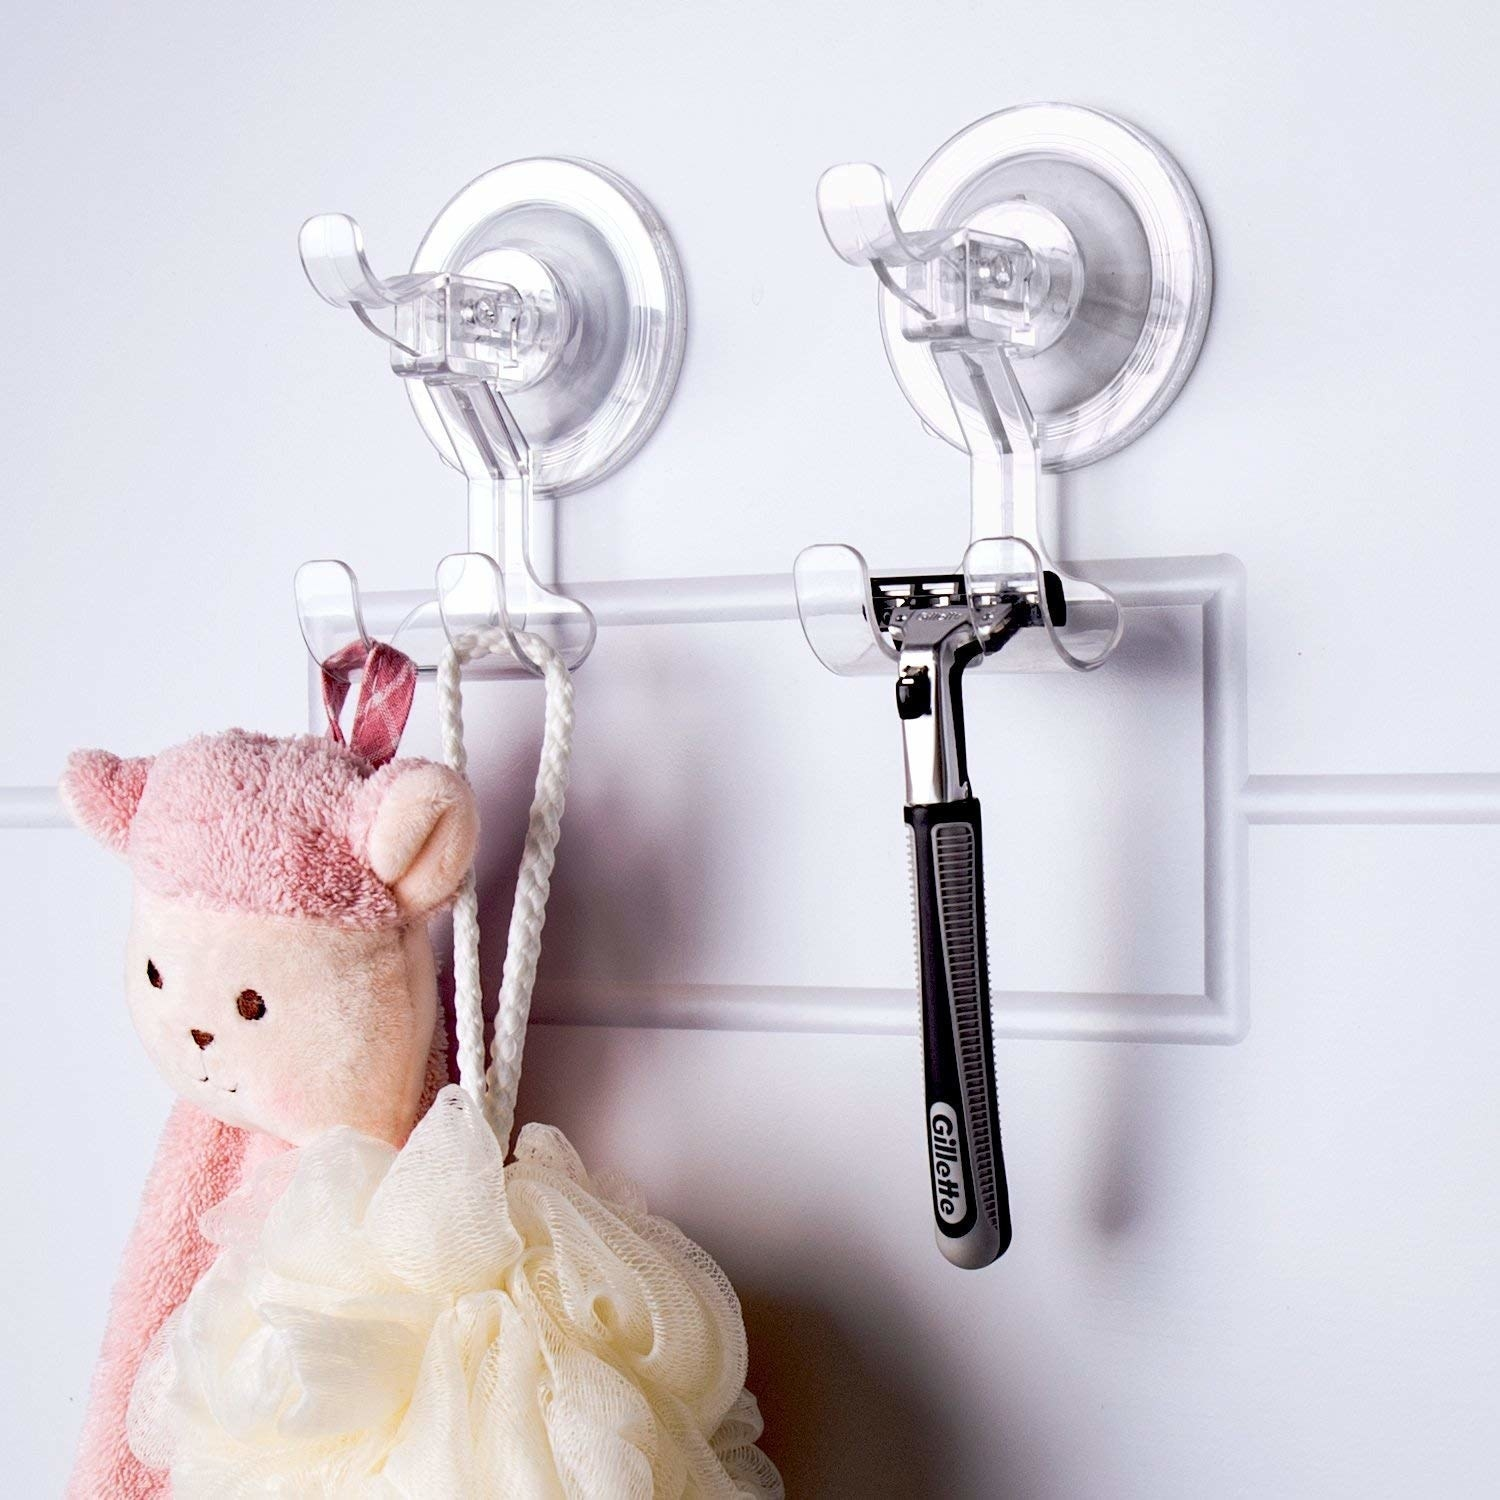 Round suction cup hooks stuck to a wall and holding up a razor and loofah